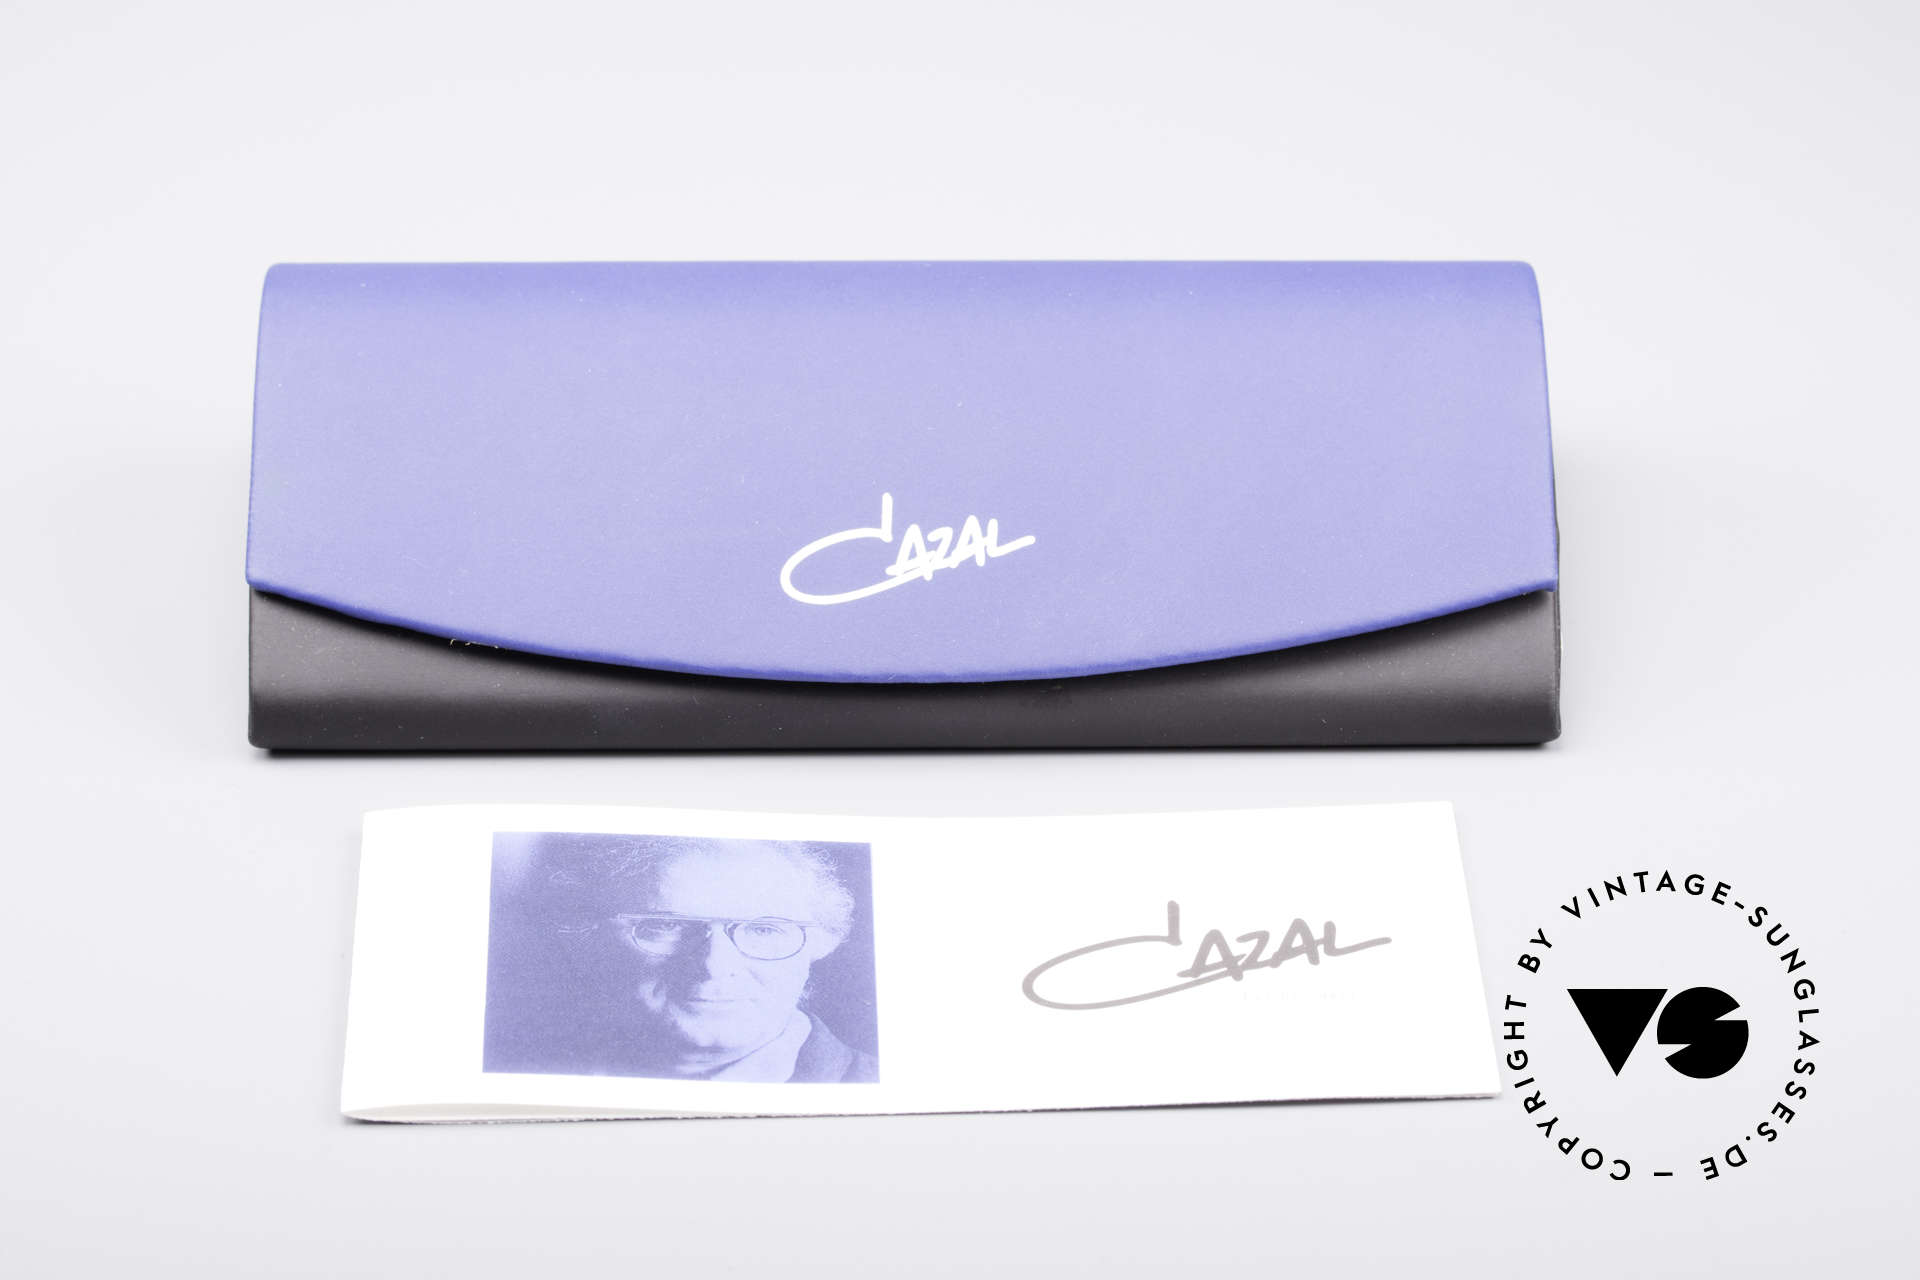 Cazal 959 90's Gentlemen's Shades, NO RETRO SHADES; but an old original (100% UV), Made for Men